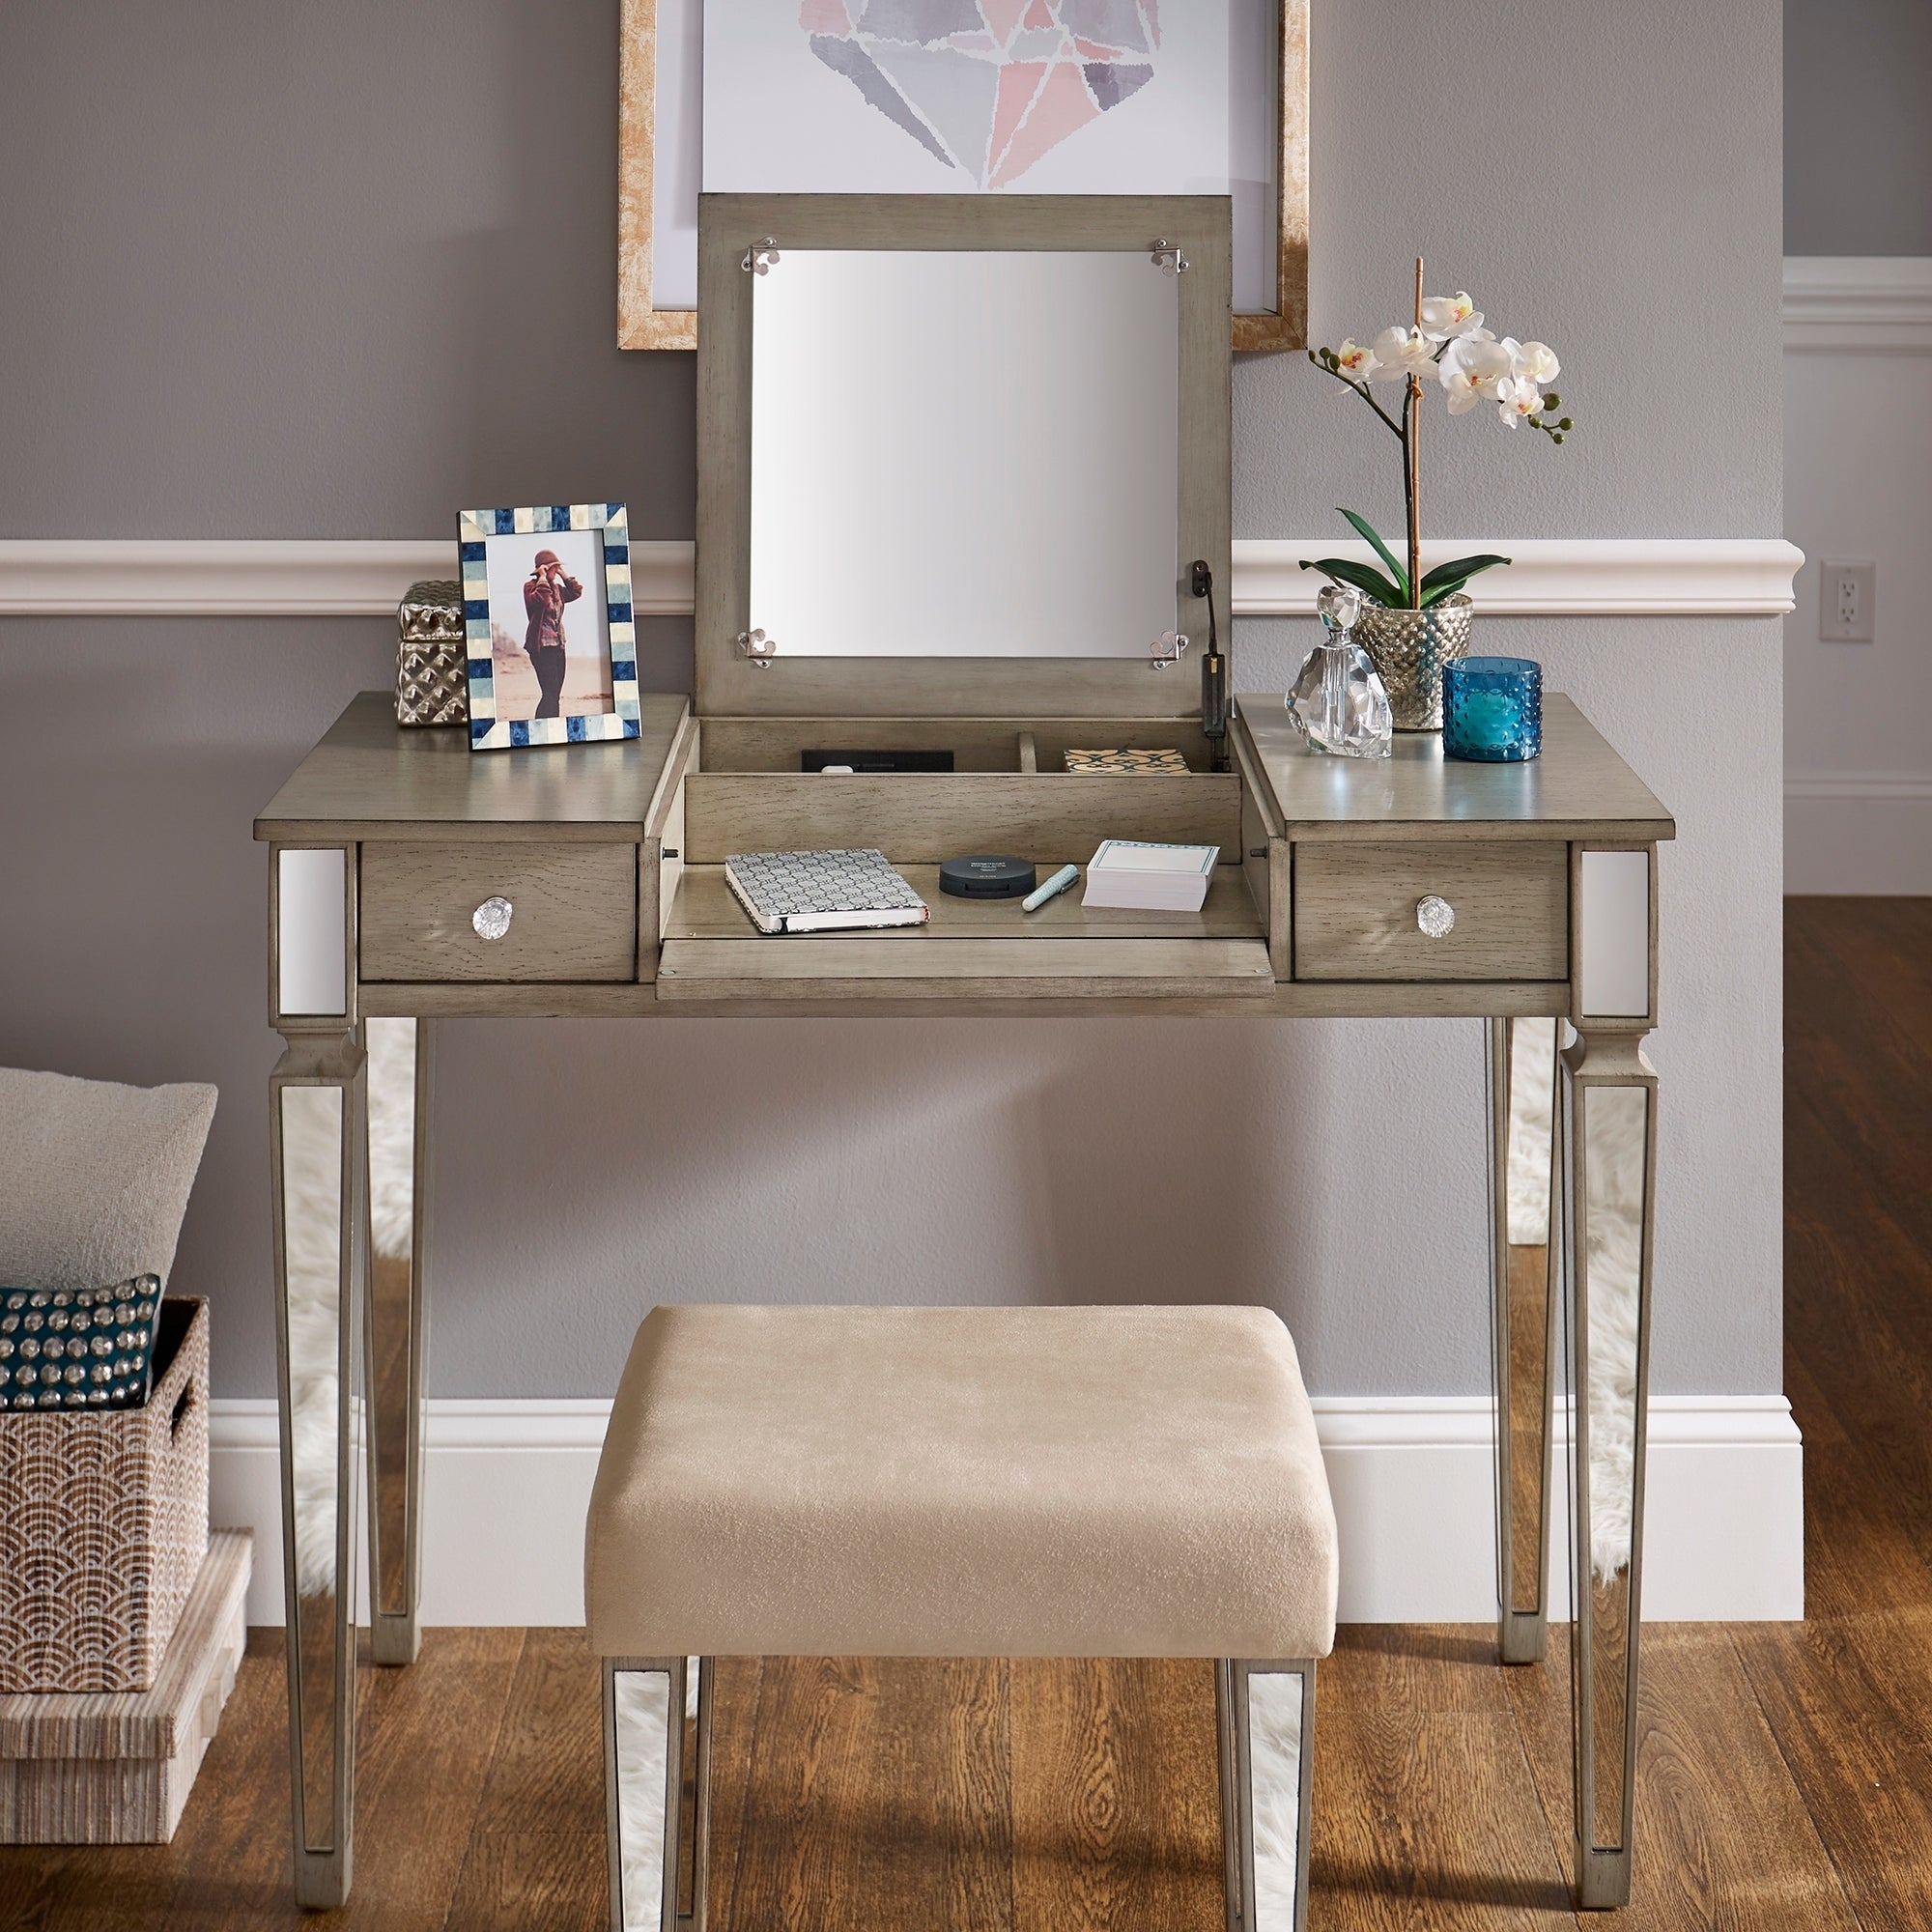 Silver Orchid Bedford Grey Mirrored Vanity Set With Flip Mirror And Strip